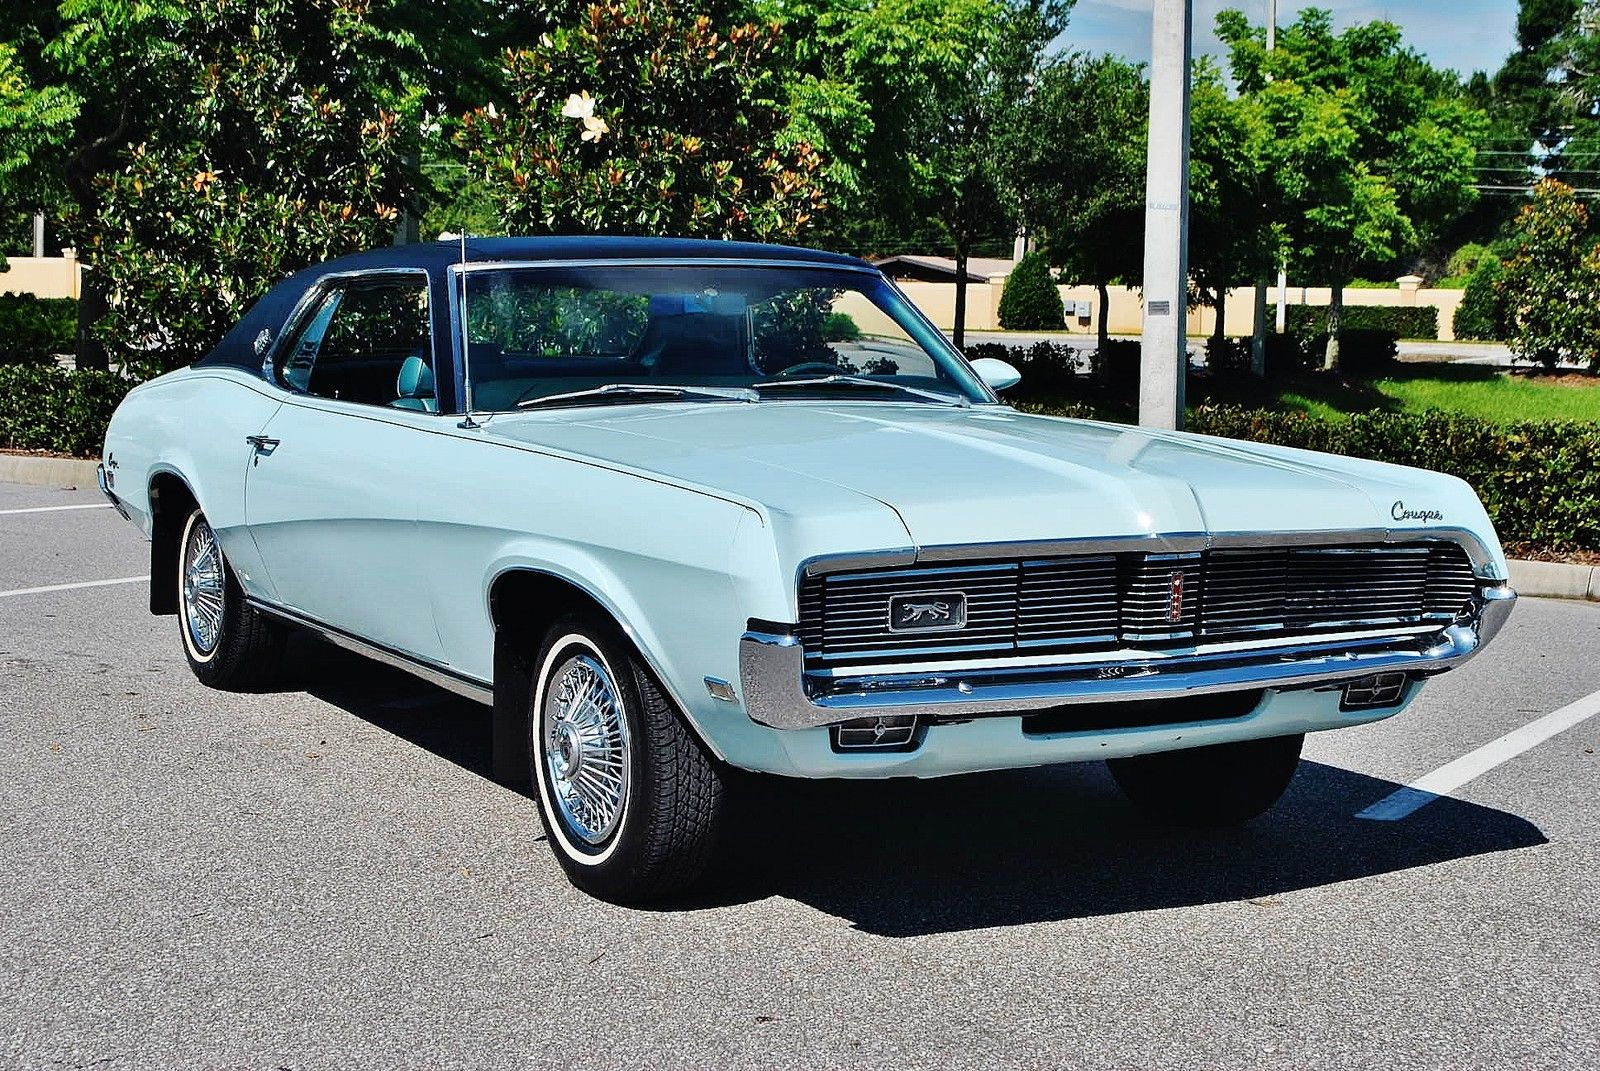 1969 Mercury Cougar XR72